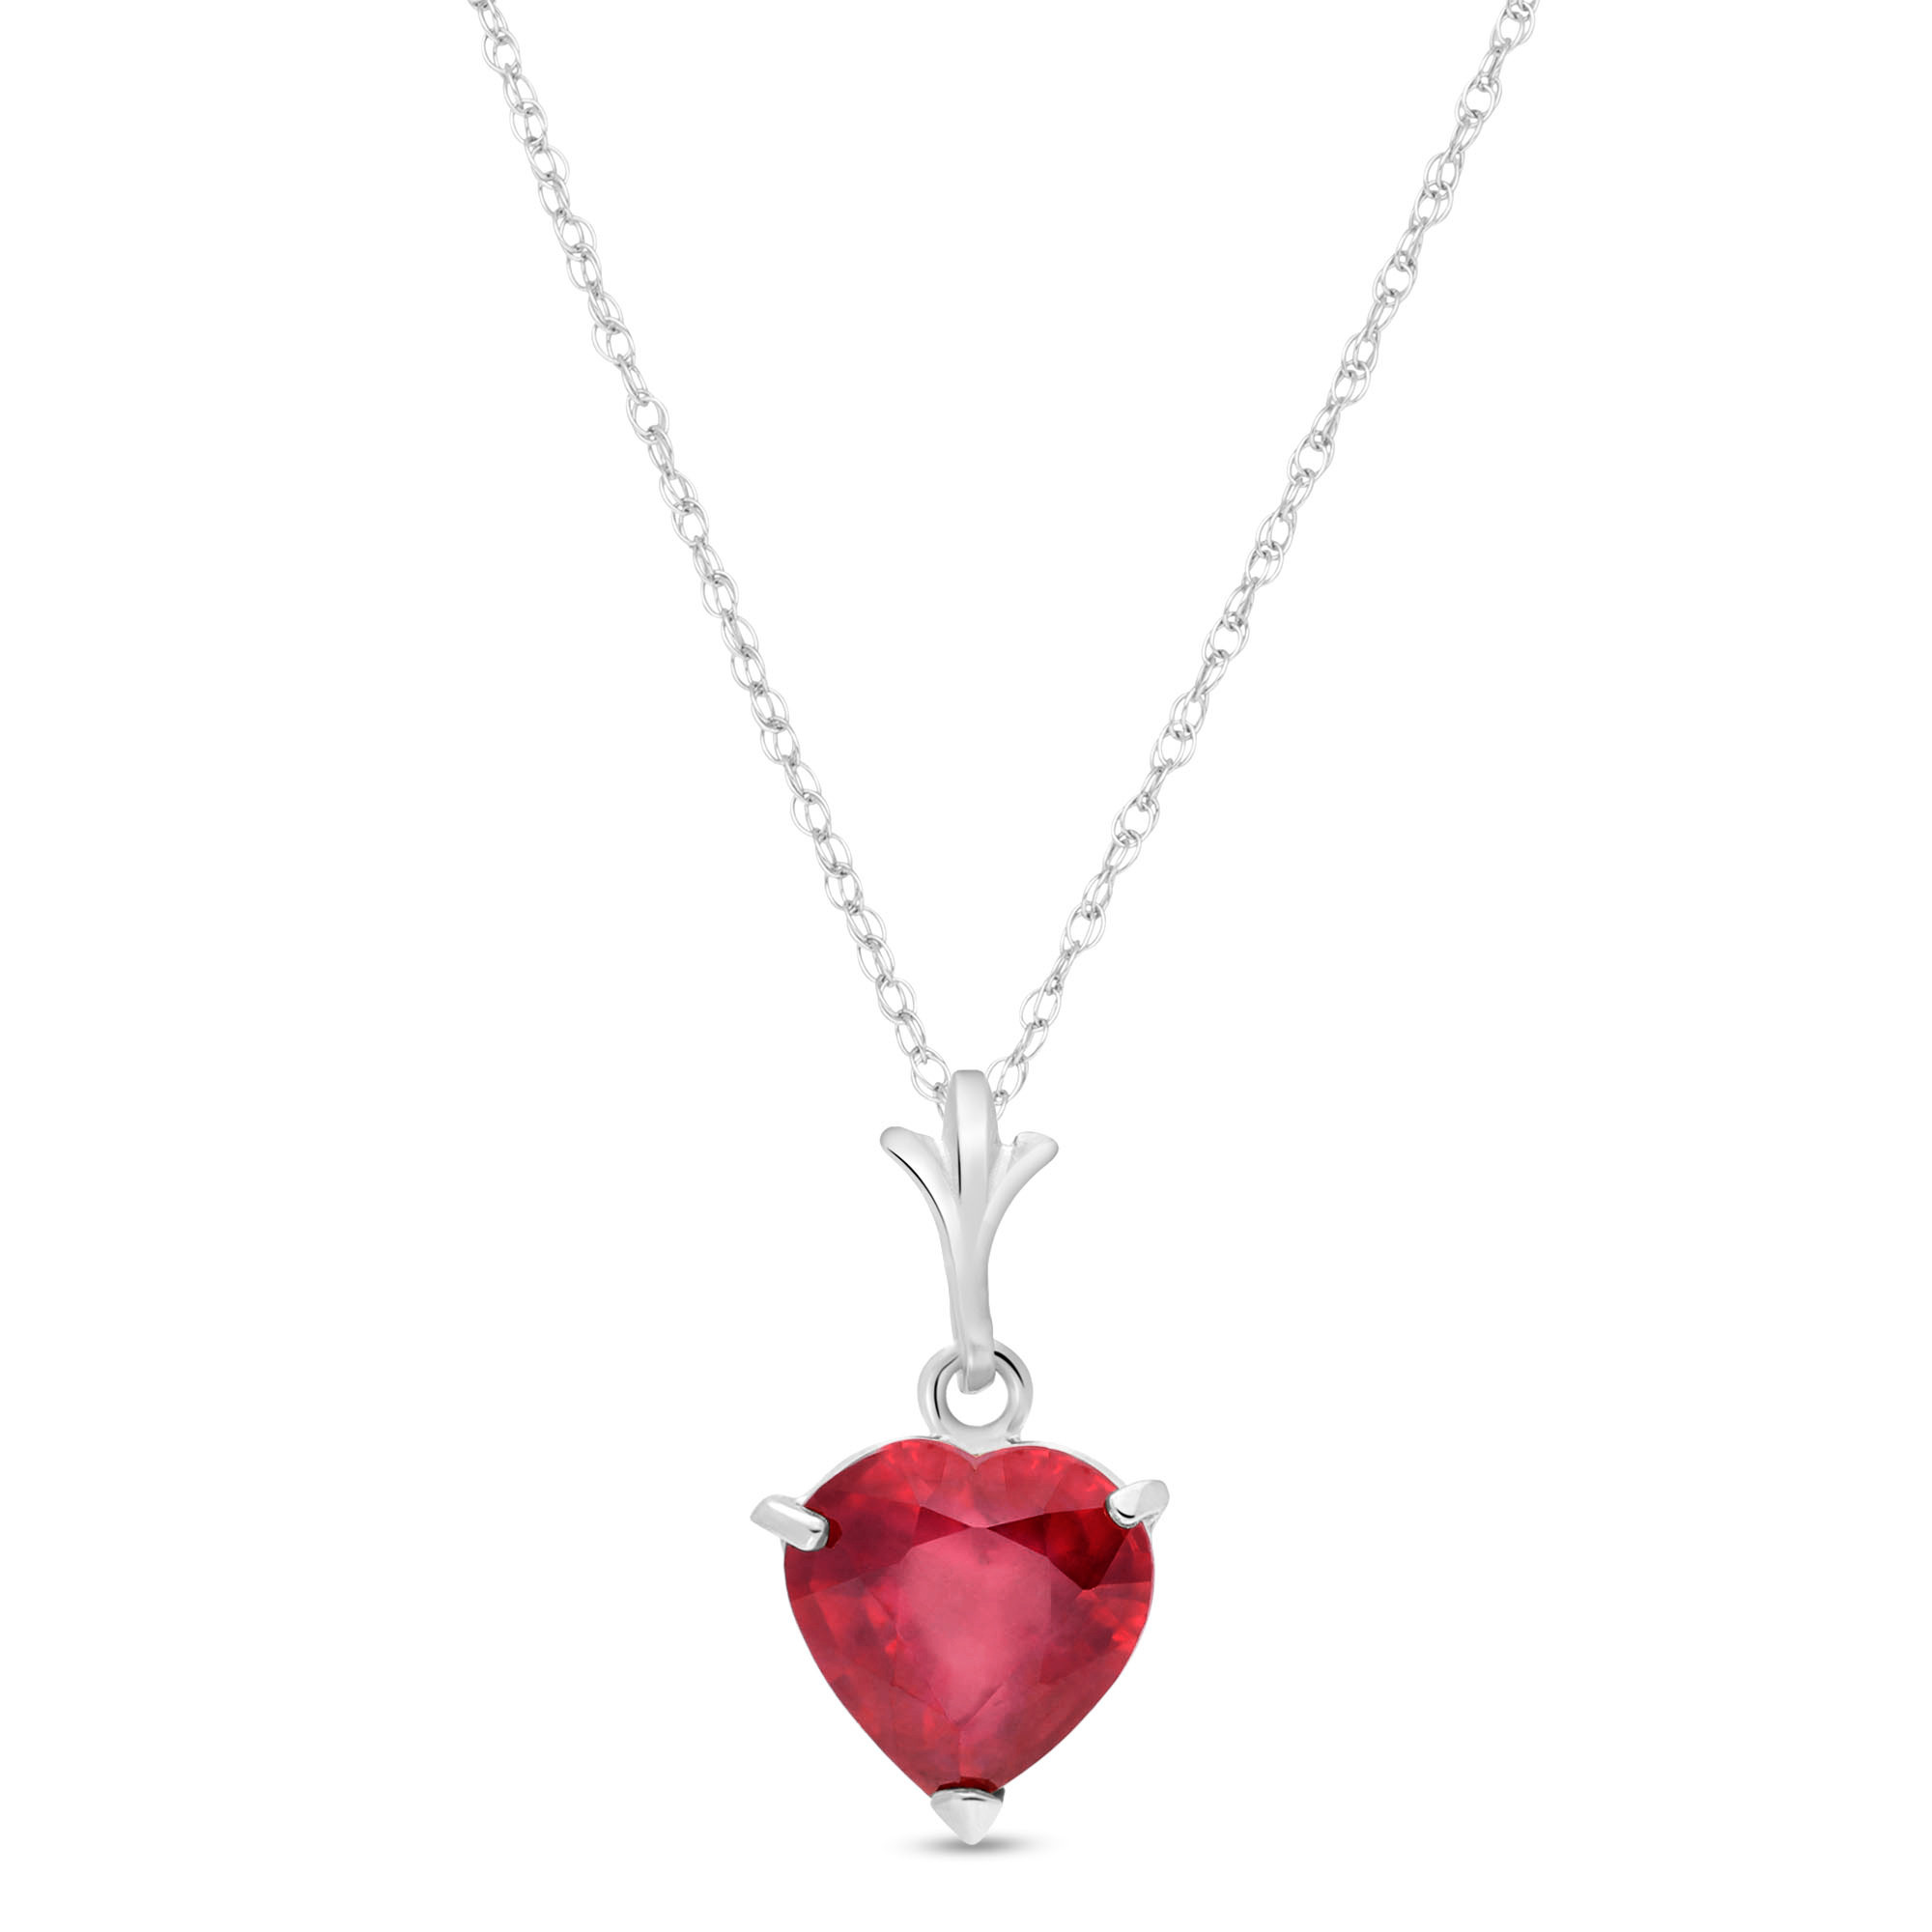 Ruby Heart Pendant Necklace 1.45 ct in 14K White Gold